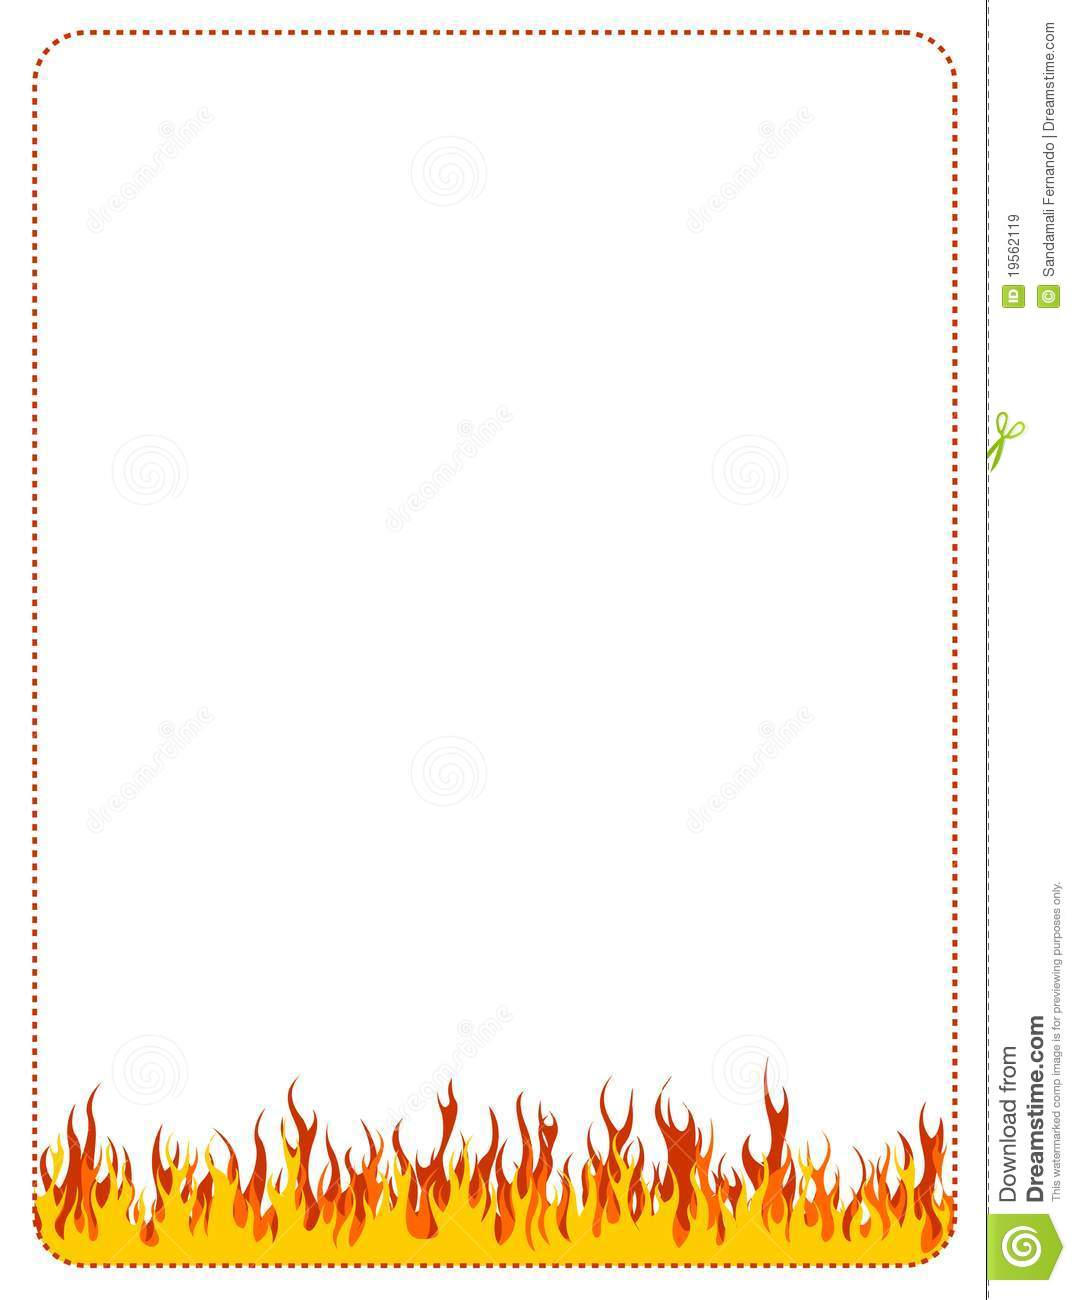 fire web background border royalty free stock images volcano clip art png volcano clip art postscript